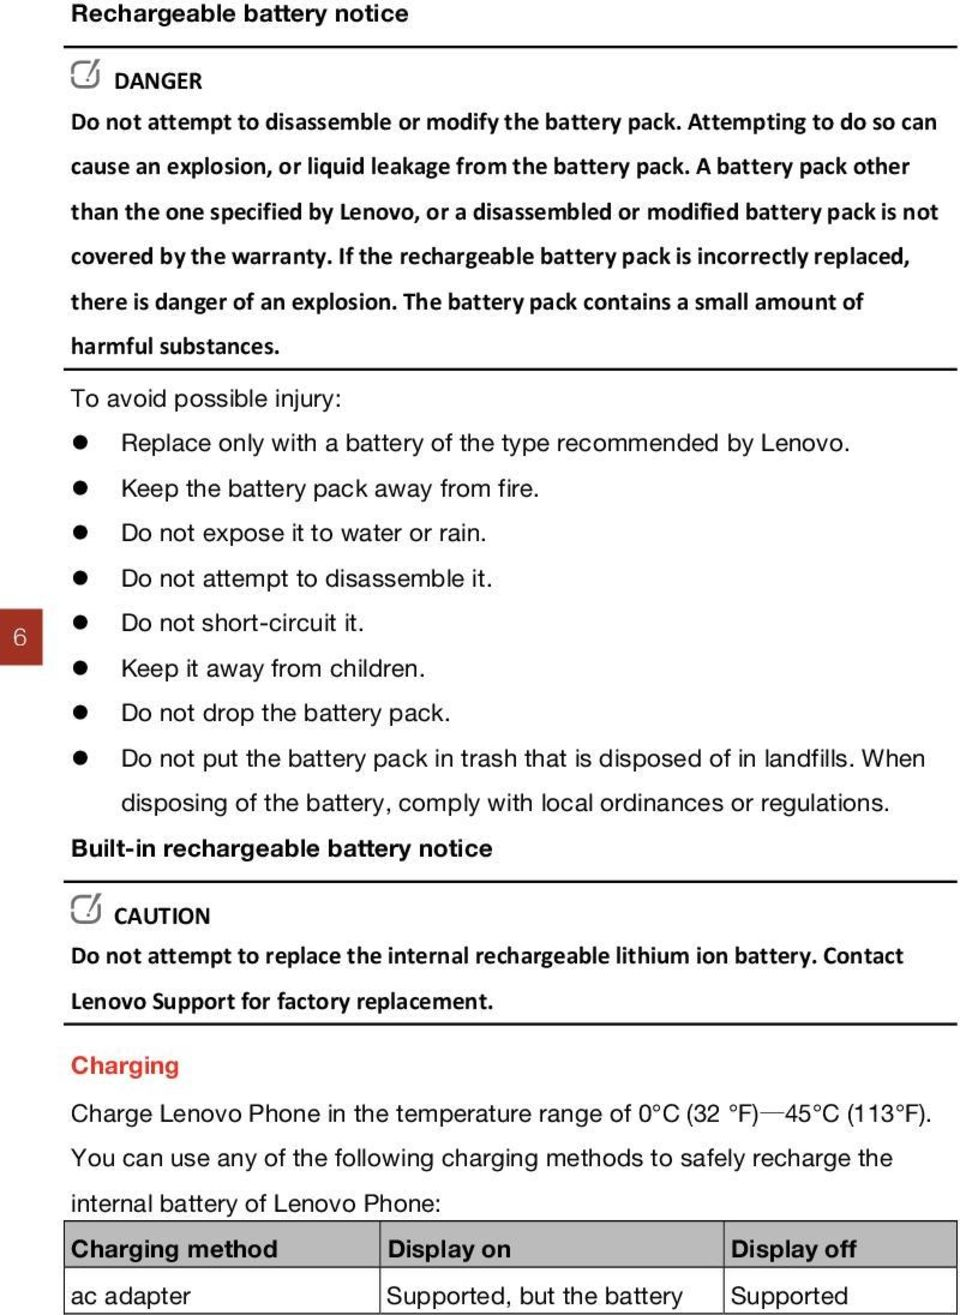 If the rechargeable battery pack is incorrectly replaced, there is danger of an explosion. The battery pack contains a small amount of harmful substances.